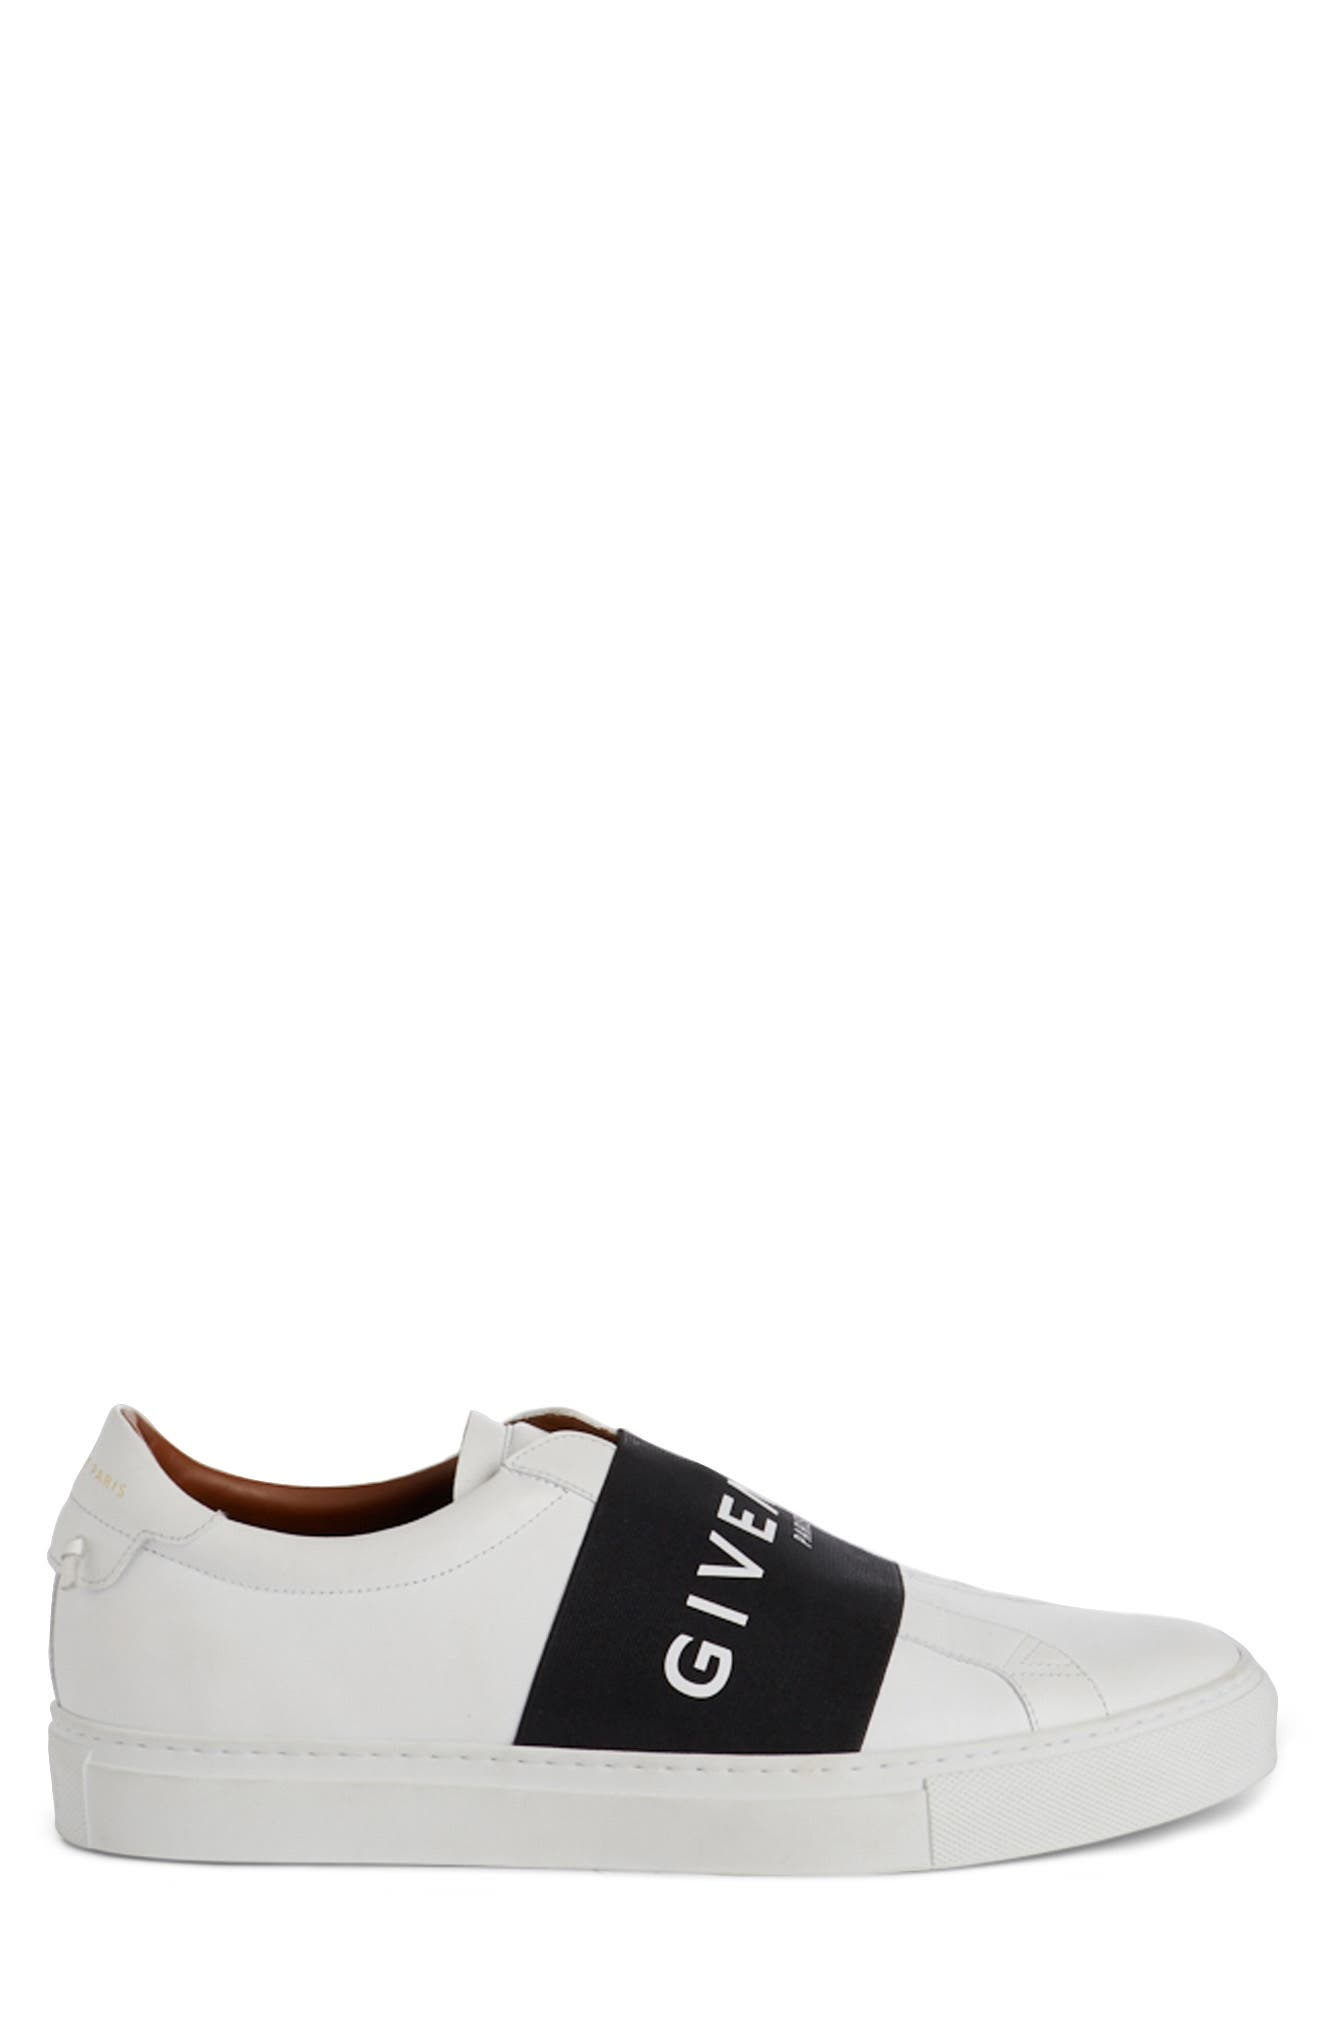 Alternate Image 3  - Givenchy Logo Strap Slip-On Sneaker (Women)